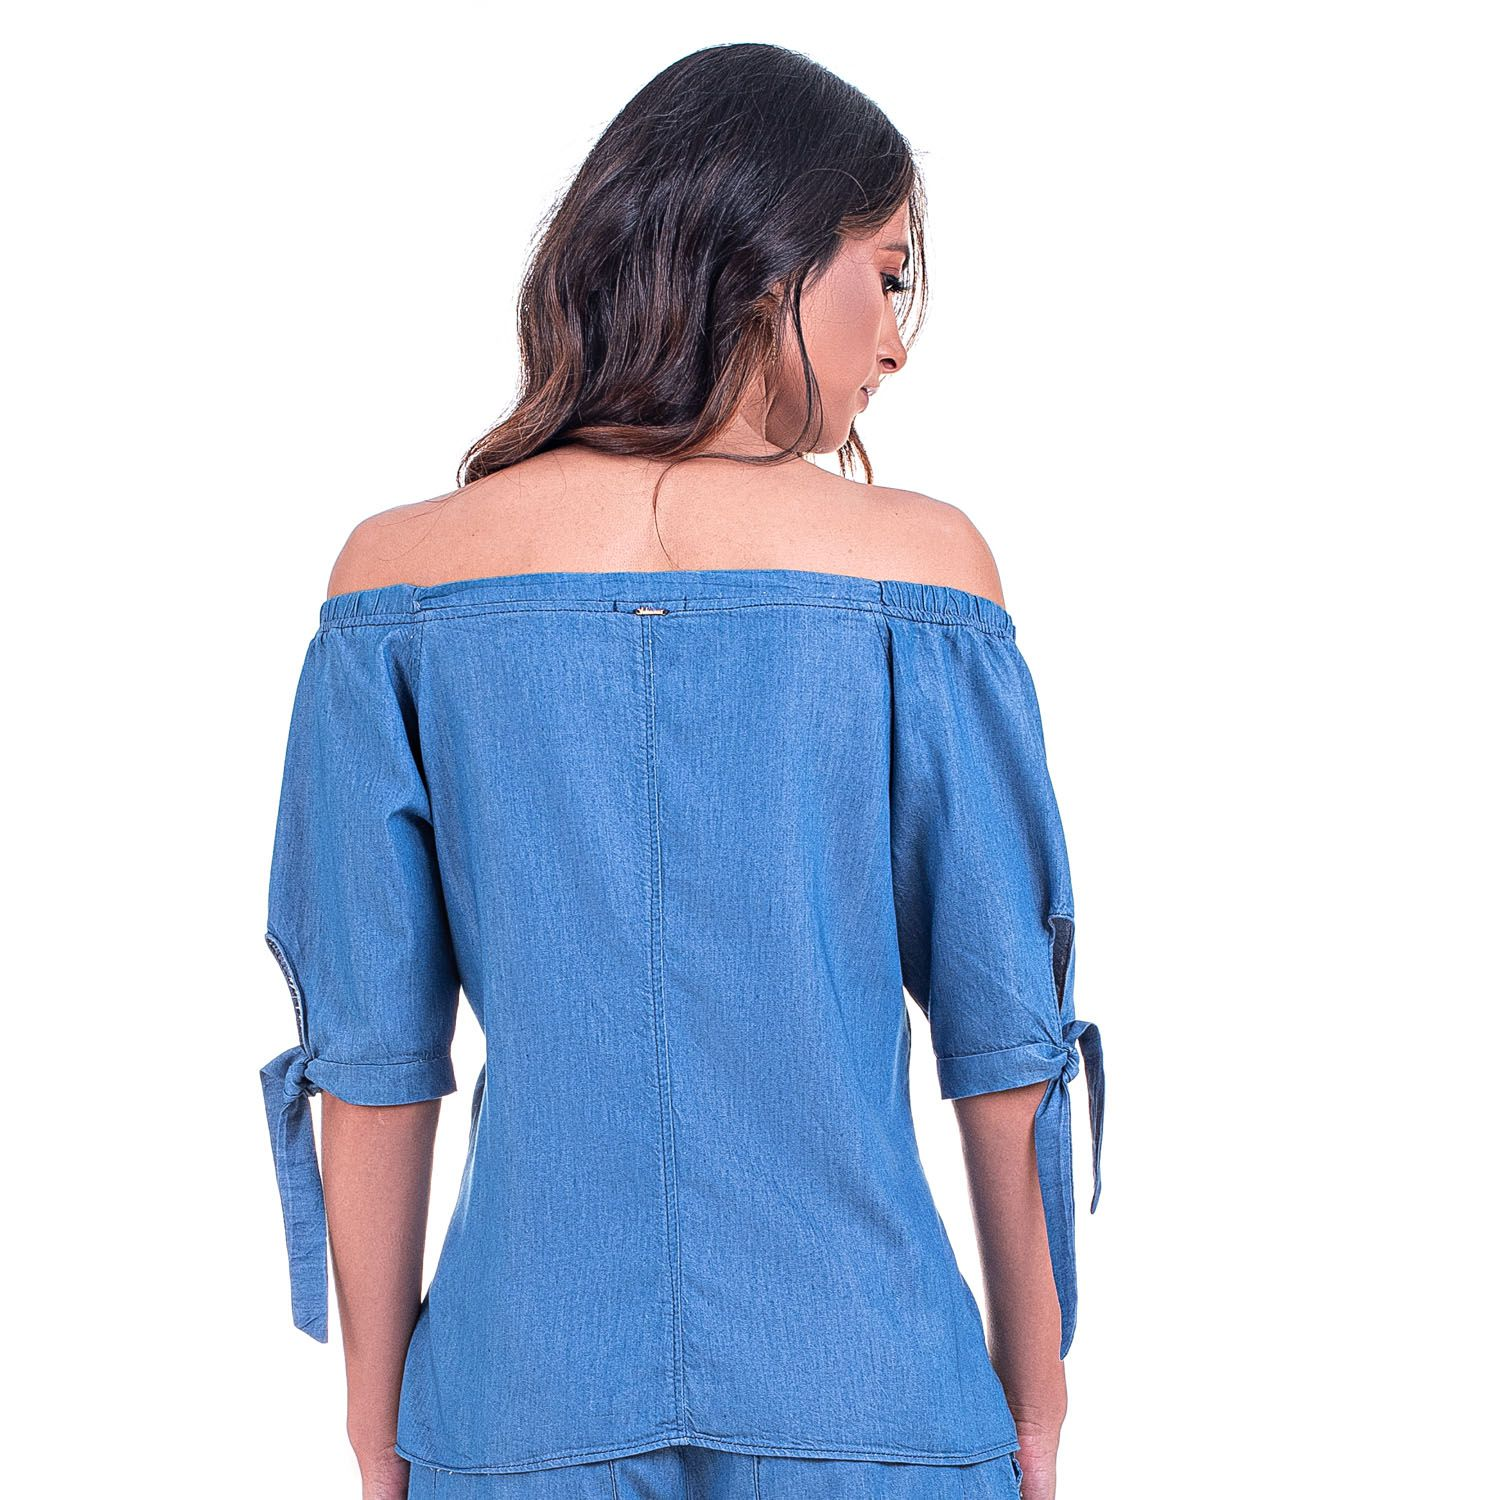 Blusa Ombro a Ombro Jeans Leve